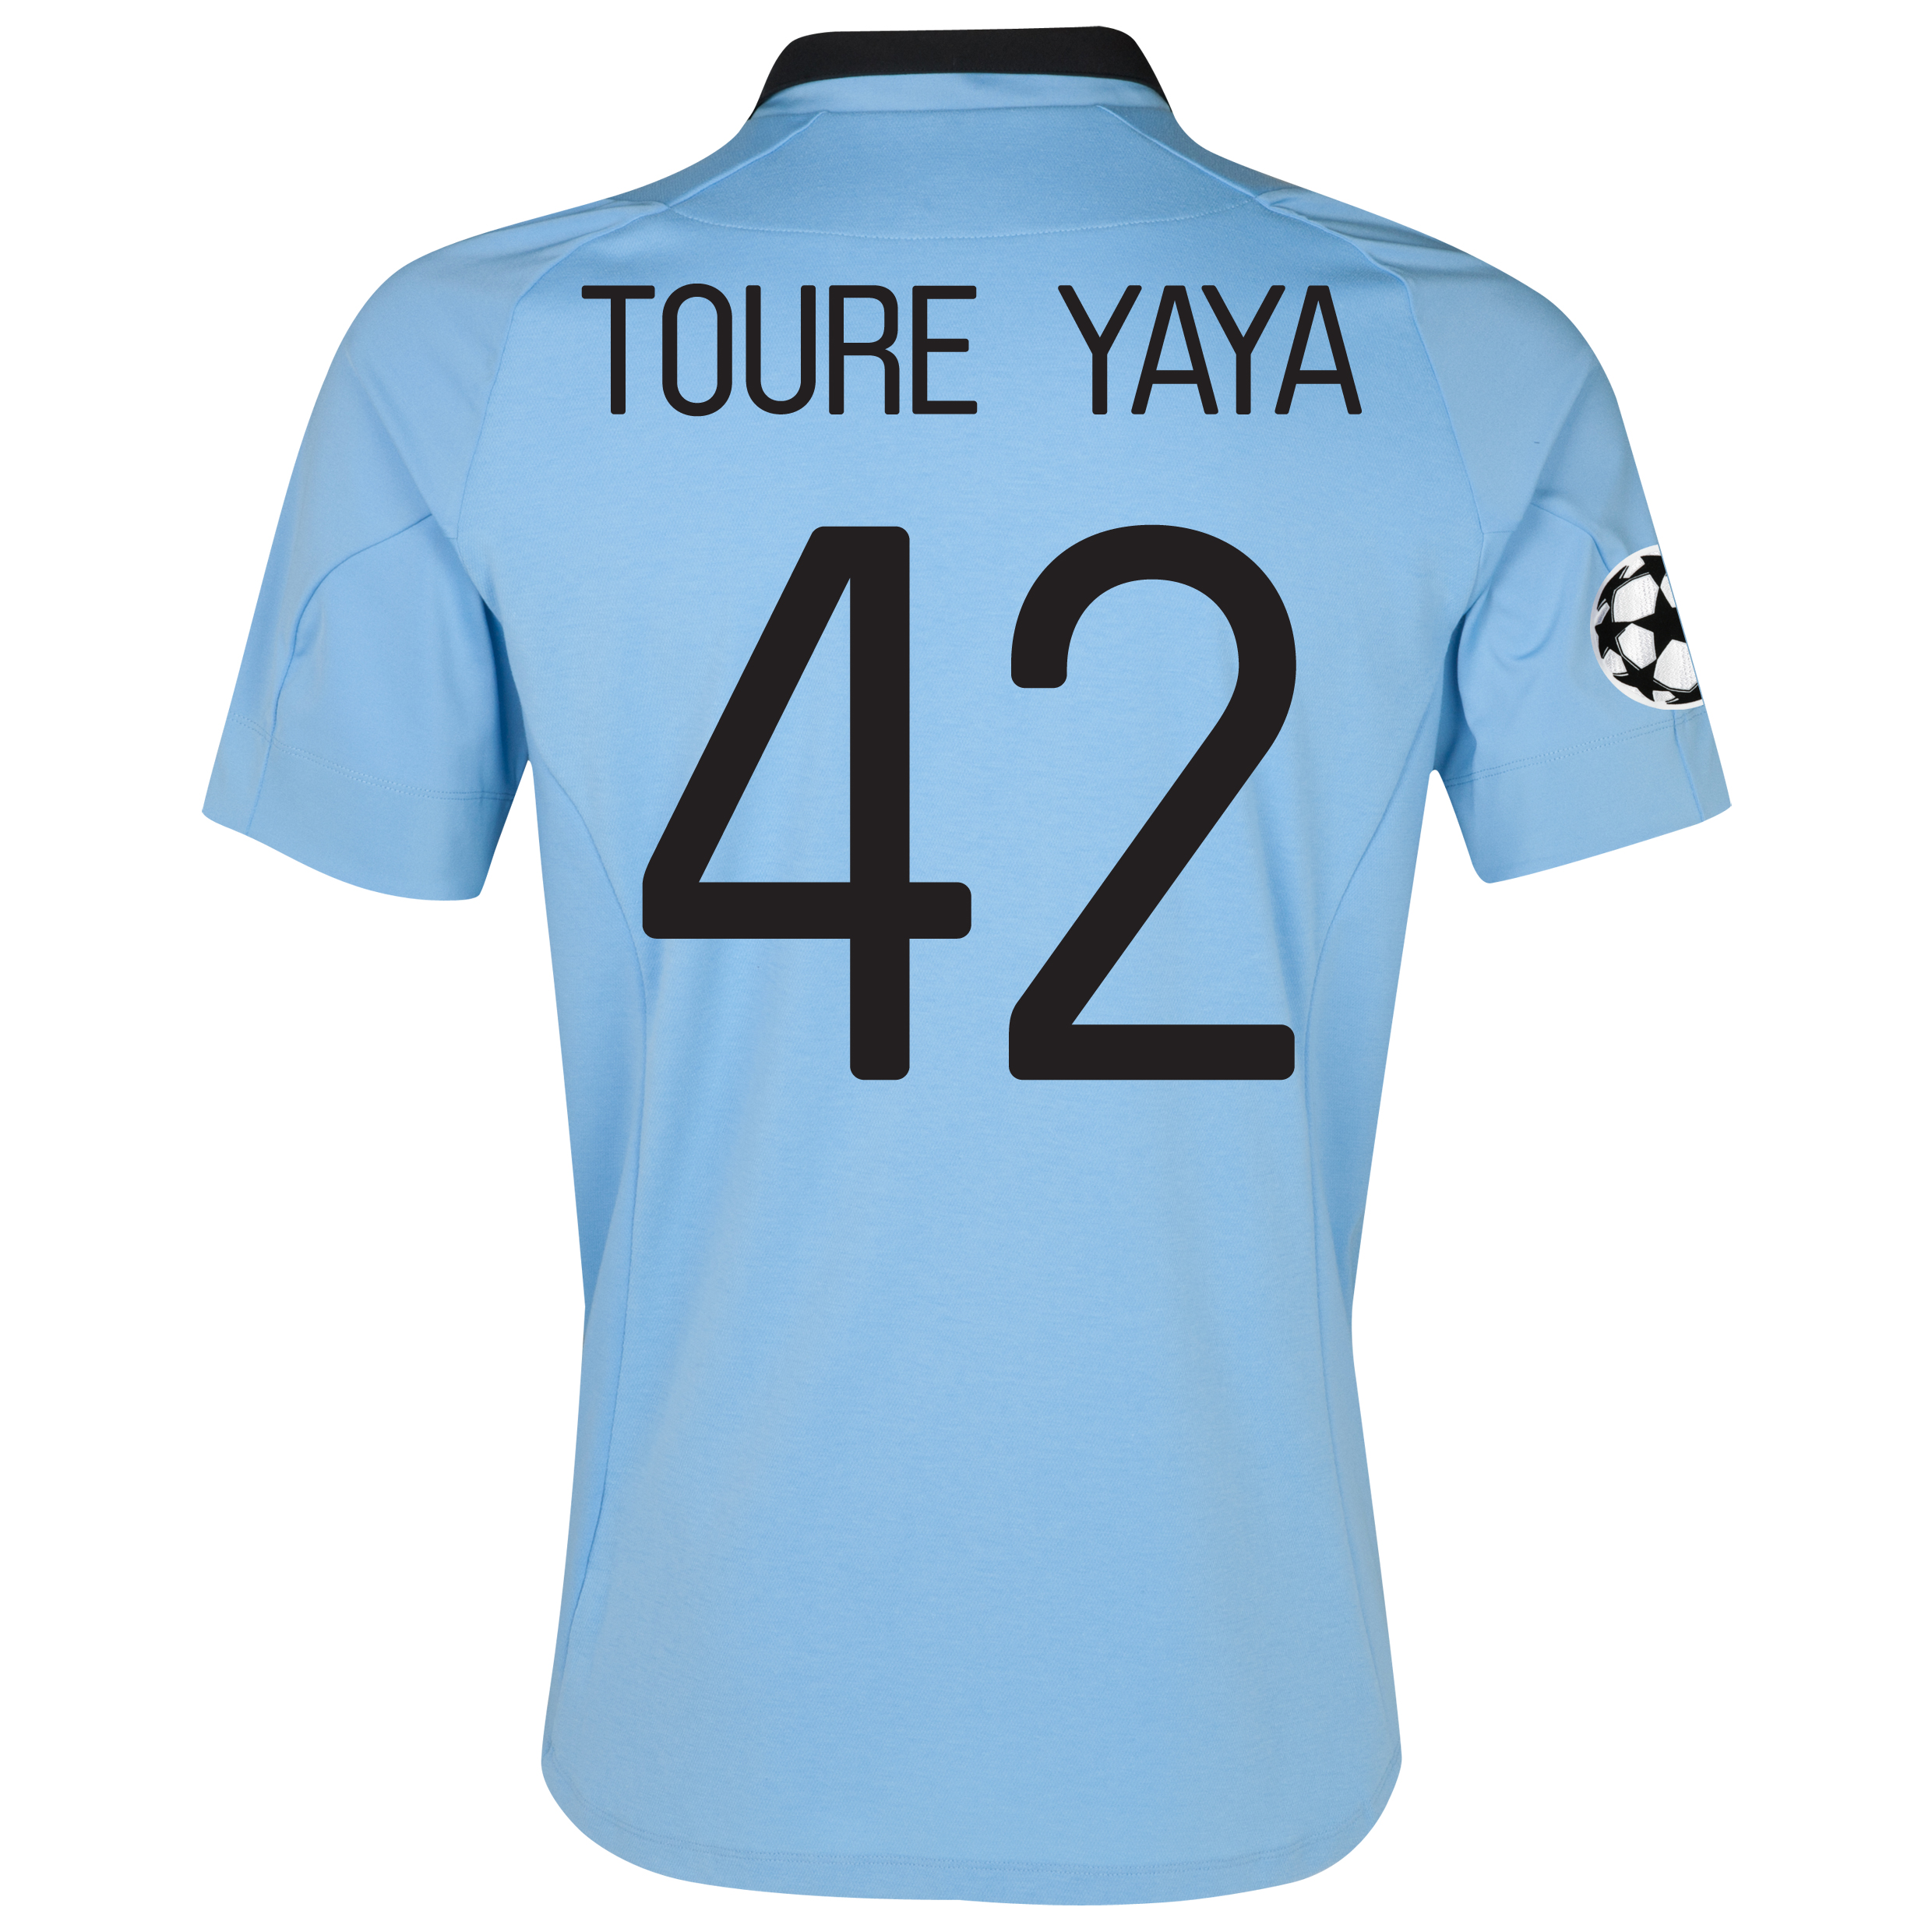 Manchester City UEFA Champions League Home Shirt 2012/13 with Toure Yaya 42 printing